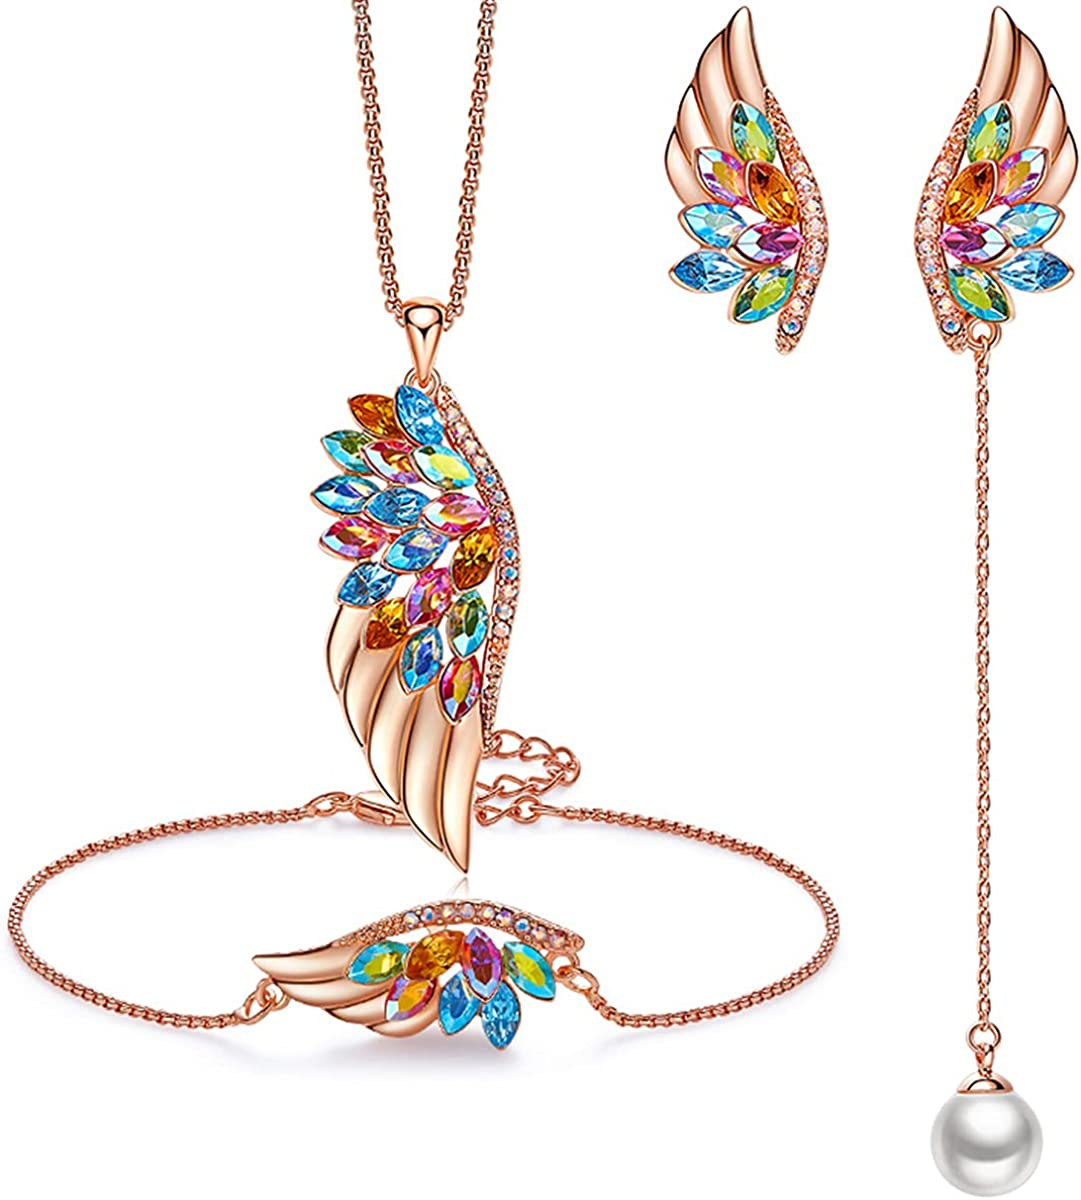 EONFUN Rose Gold Angel Wing Jewelry Sets for Women Crystal Jewelry Gifts for Her Birthday Anniversary